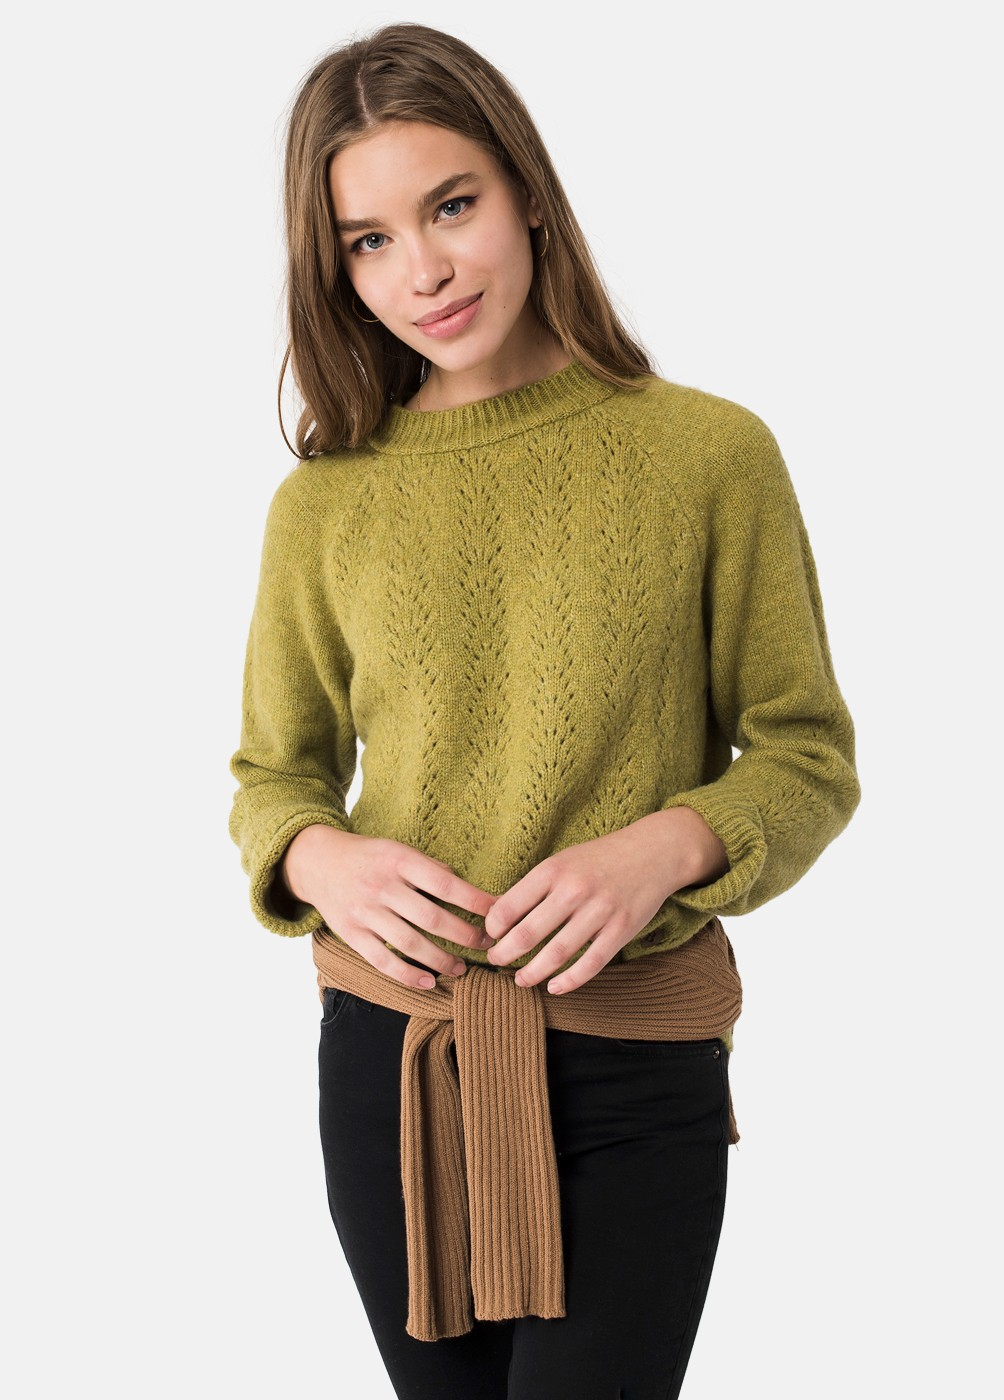 BRESSAY KNITTED FRONT PLUNGED JUMPER